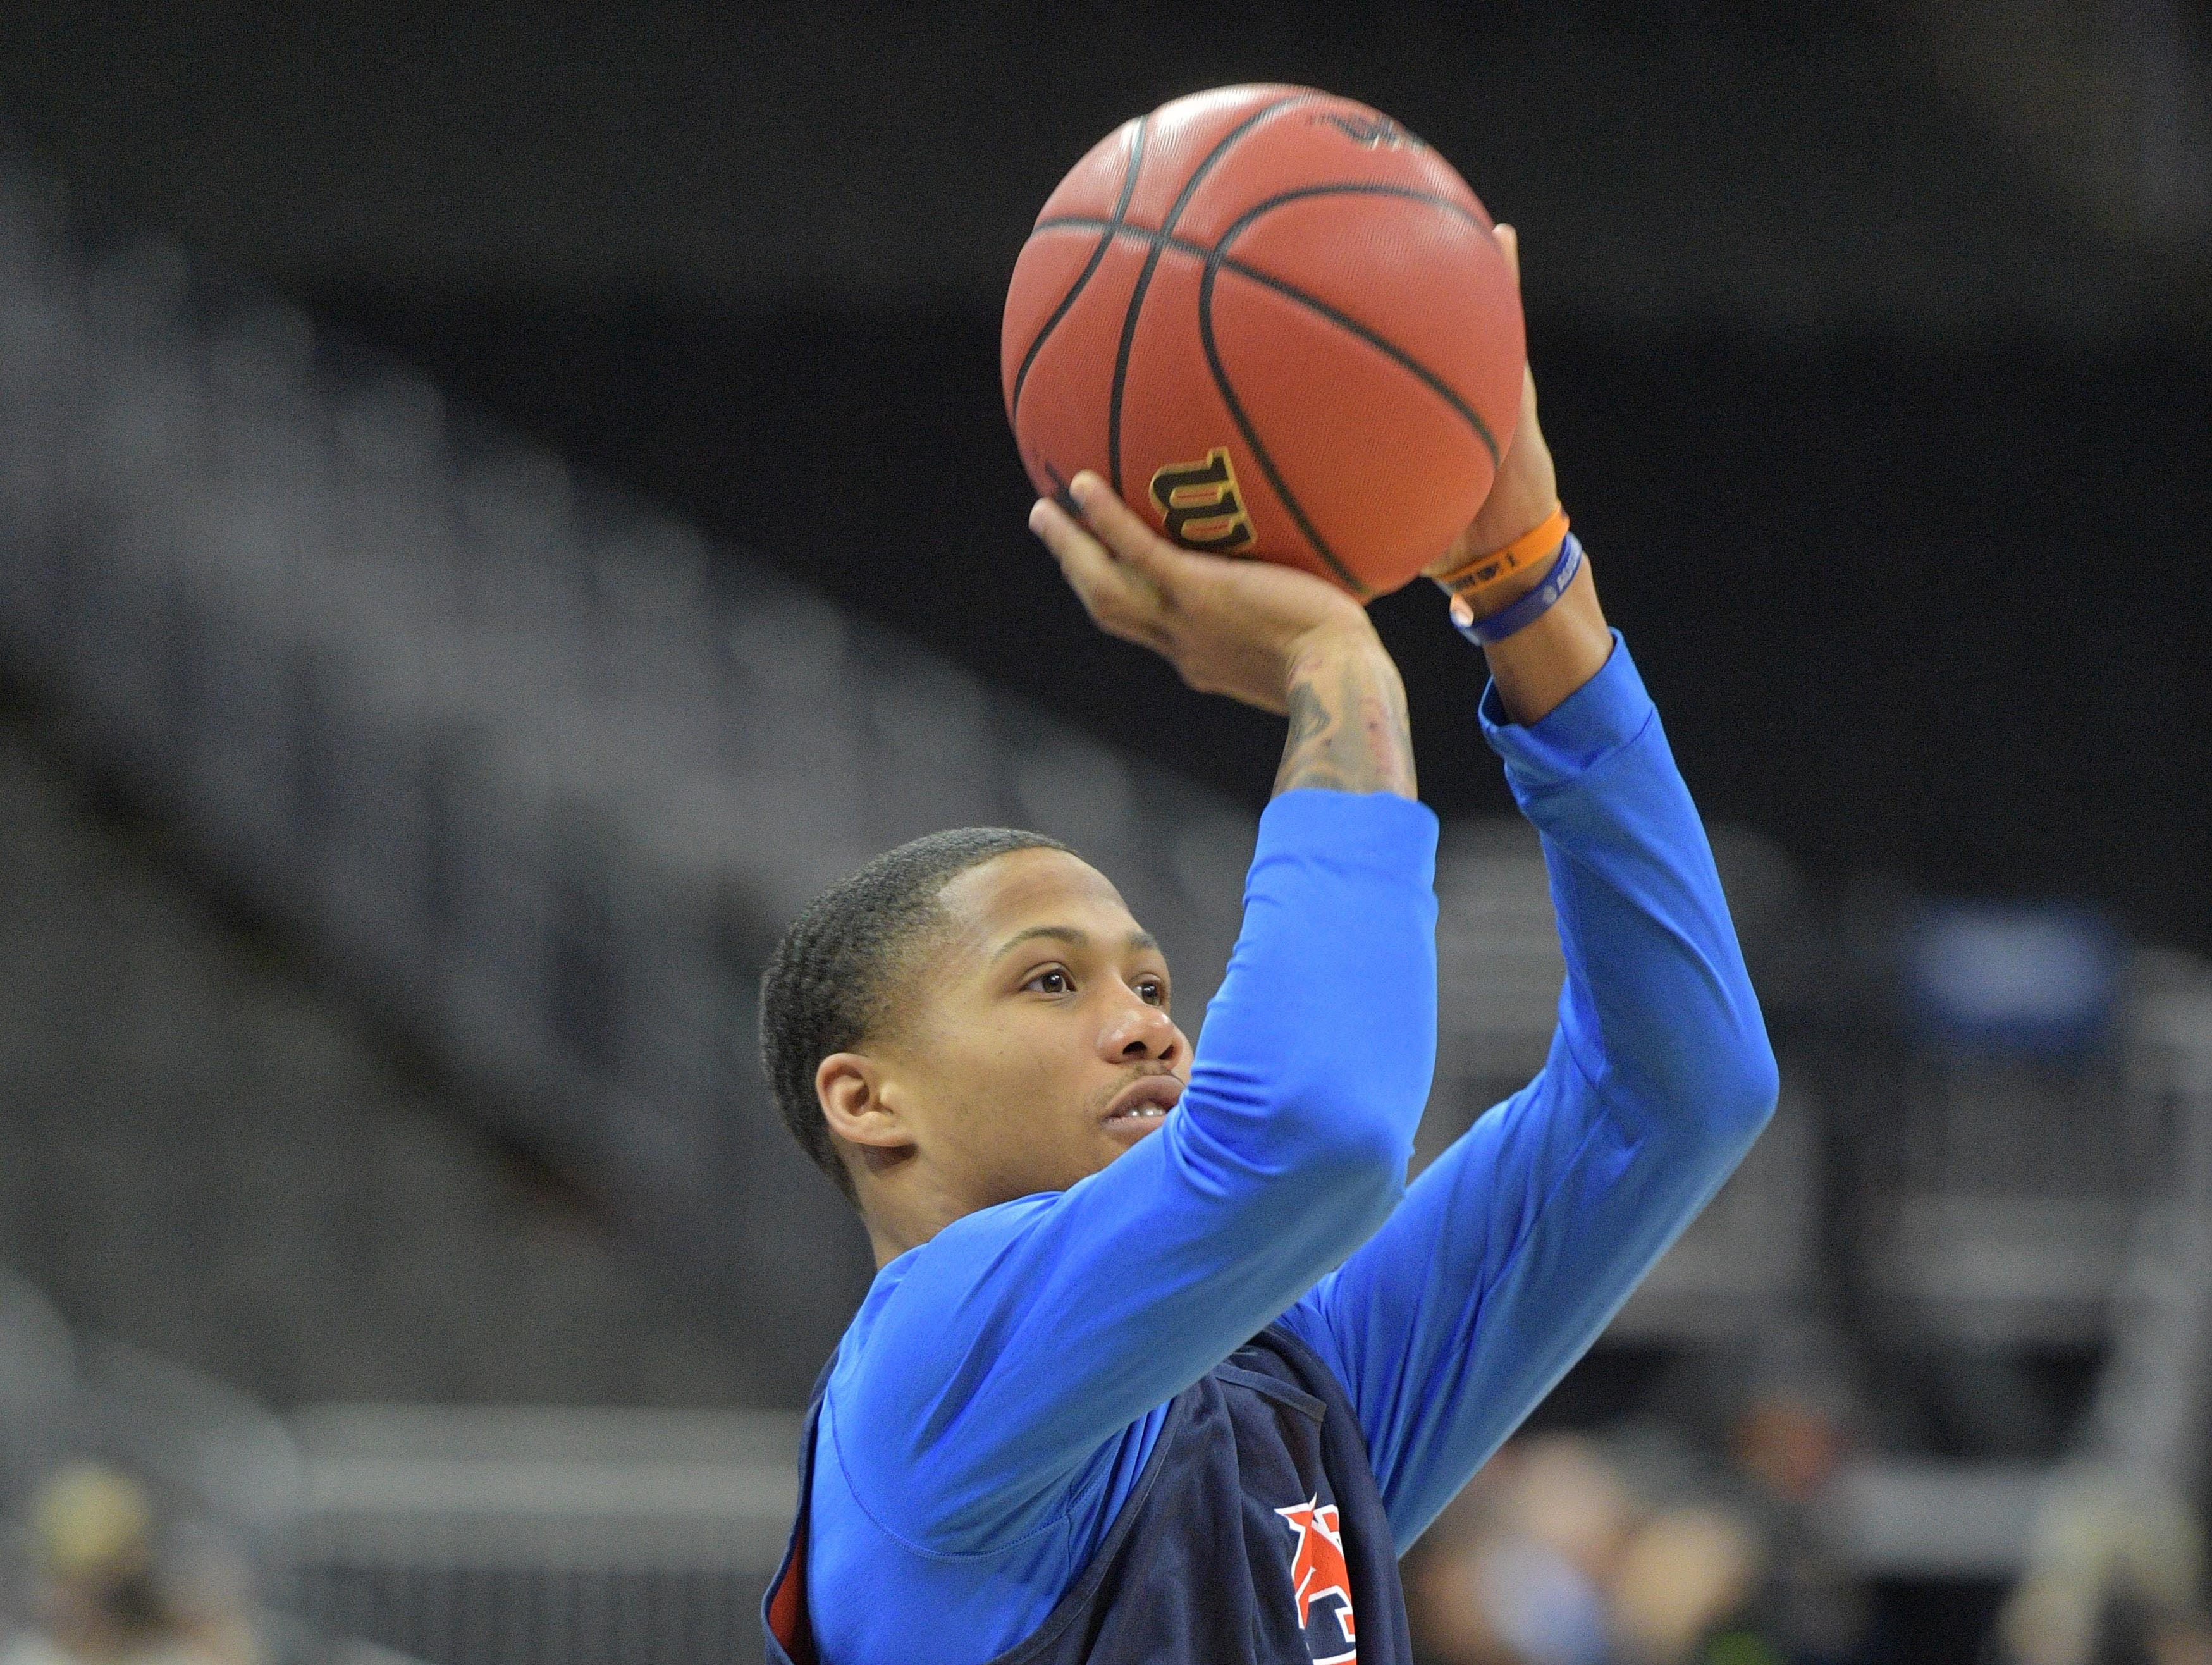 Mar 28, 2019; Kansas City, MO, United States; Auburn guard J'Von Mccormick (12) shoots during practice for the midwest regional of the 2019 NCAA Tournament at Sprint Center. Mandatory Credit: Denny Medley-USA TODAY Sports